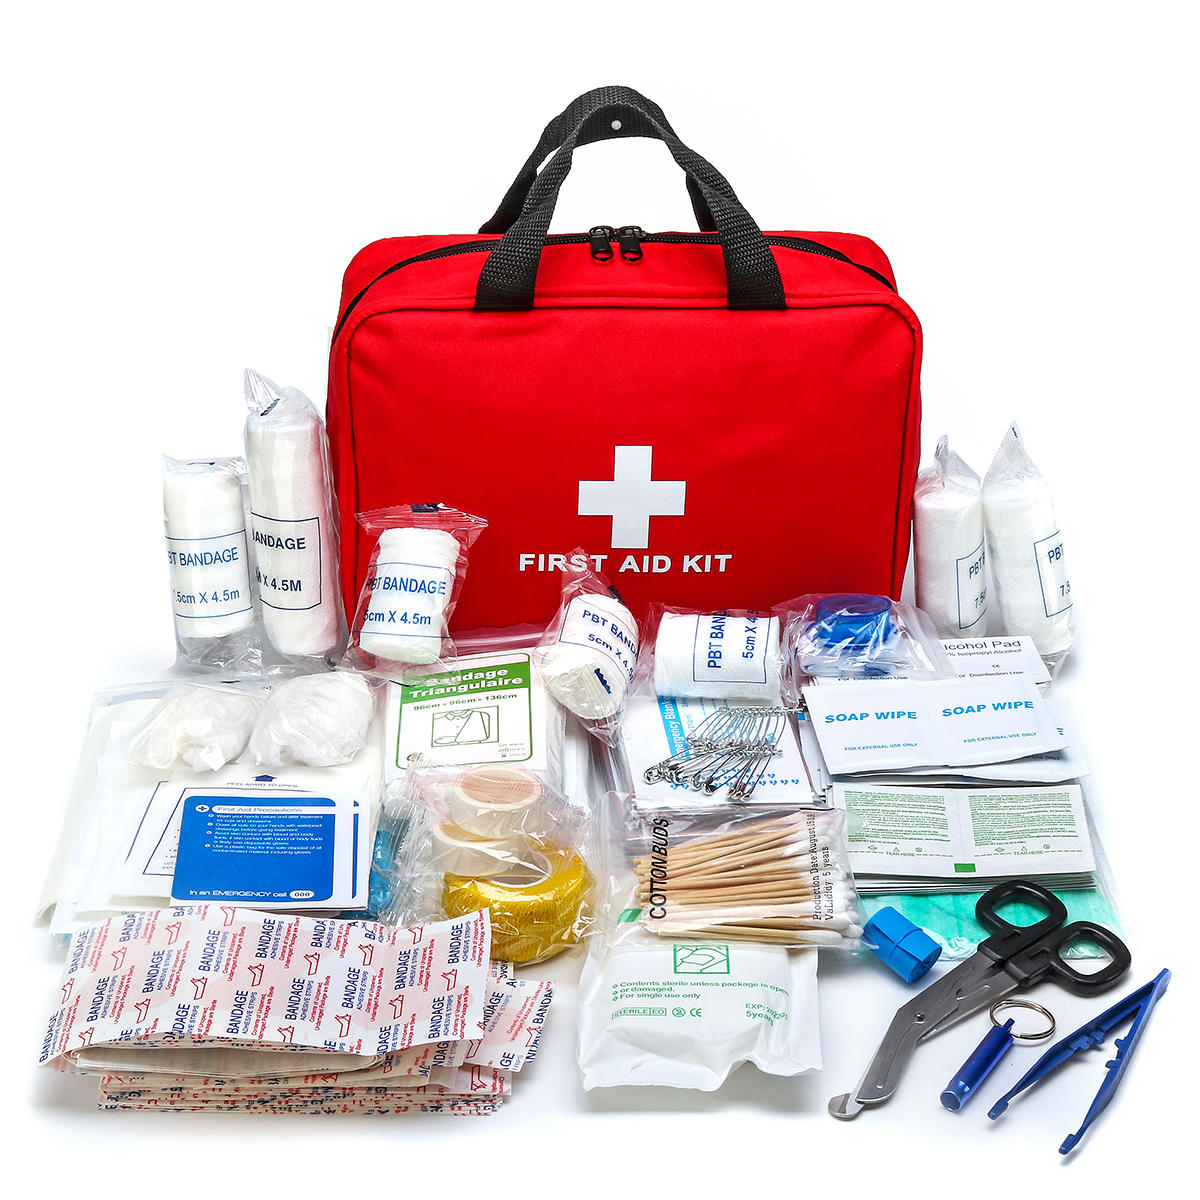 300Pcs Emergency Survival Kits Medical Supplies Wound Bag Treatment Pack Set First Aid Kit for For Home Office Camping300Pcs Emergency Survival Kits Medical Supplies Wound Bag Treatment Pack Set First Aid Kit for For Home Office Camping